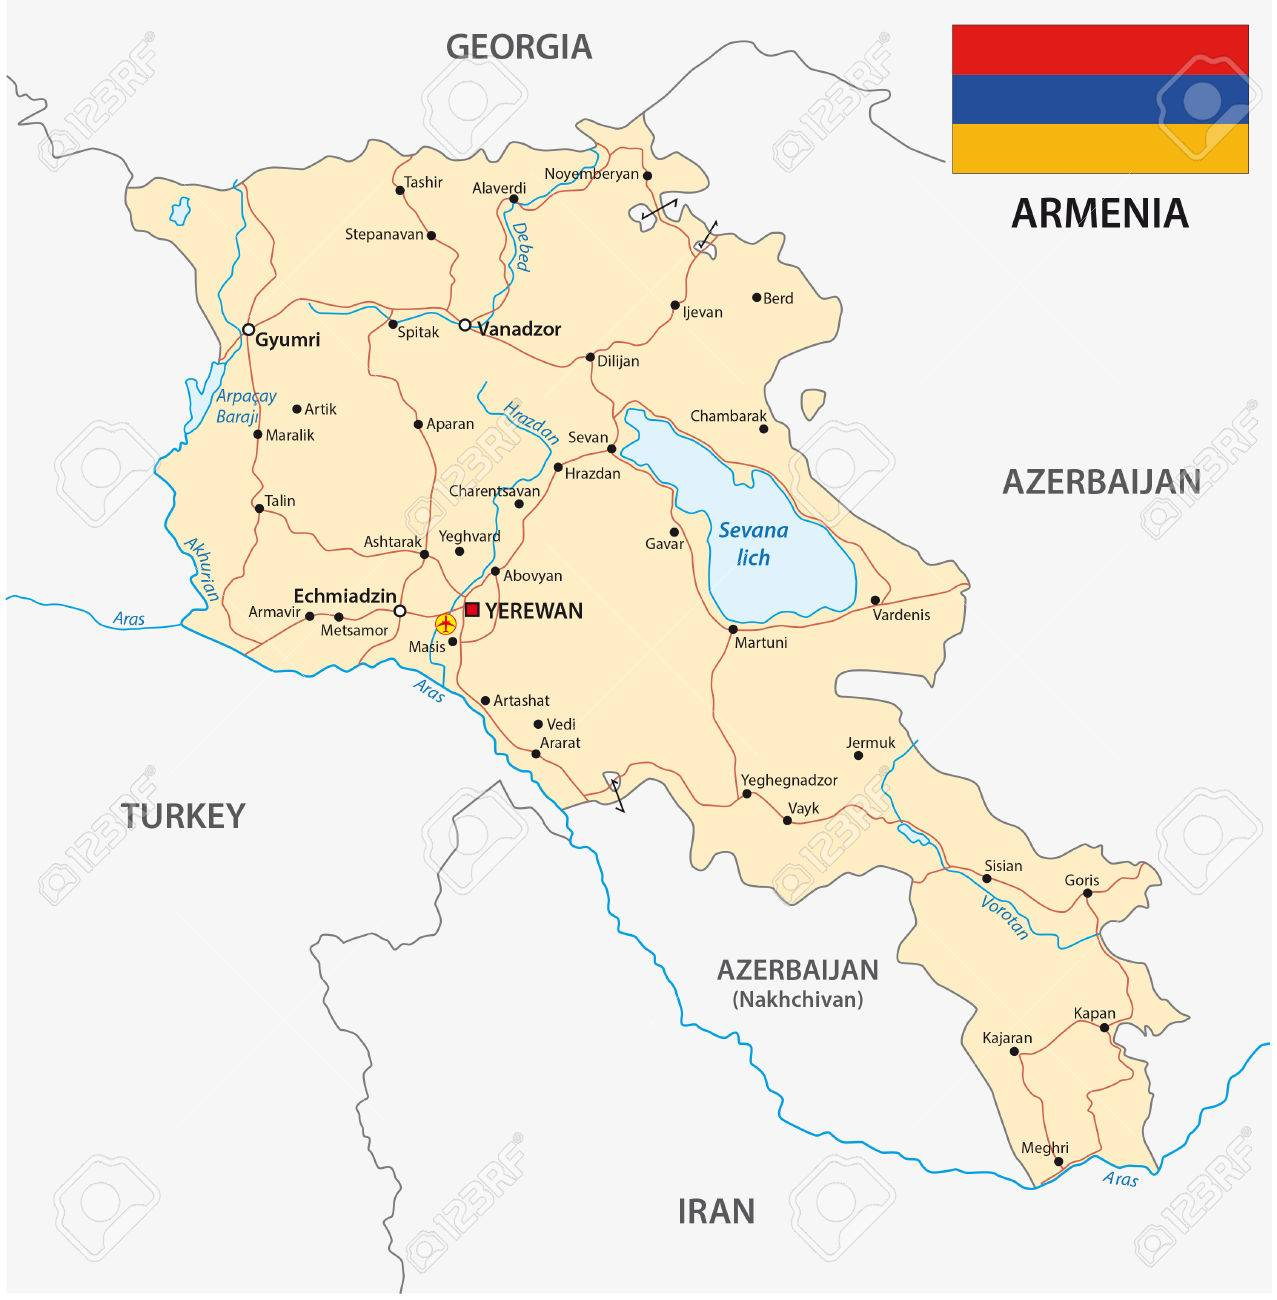 Armenia Road Map With Flag Royalty Free Cliparts Vectors And Stock